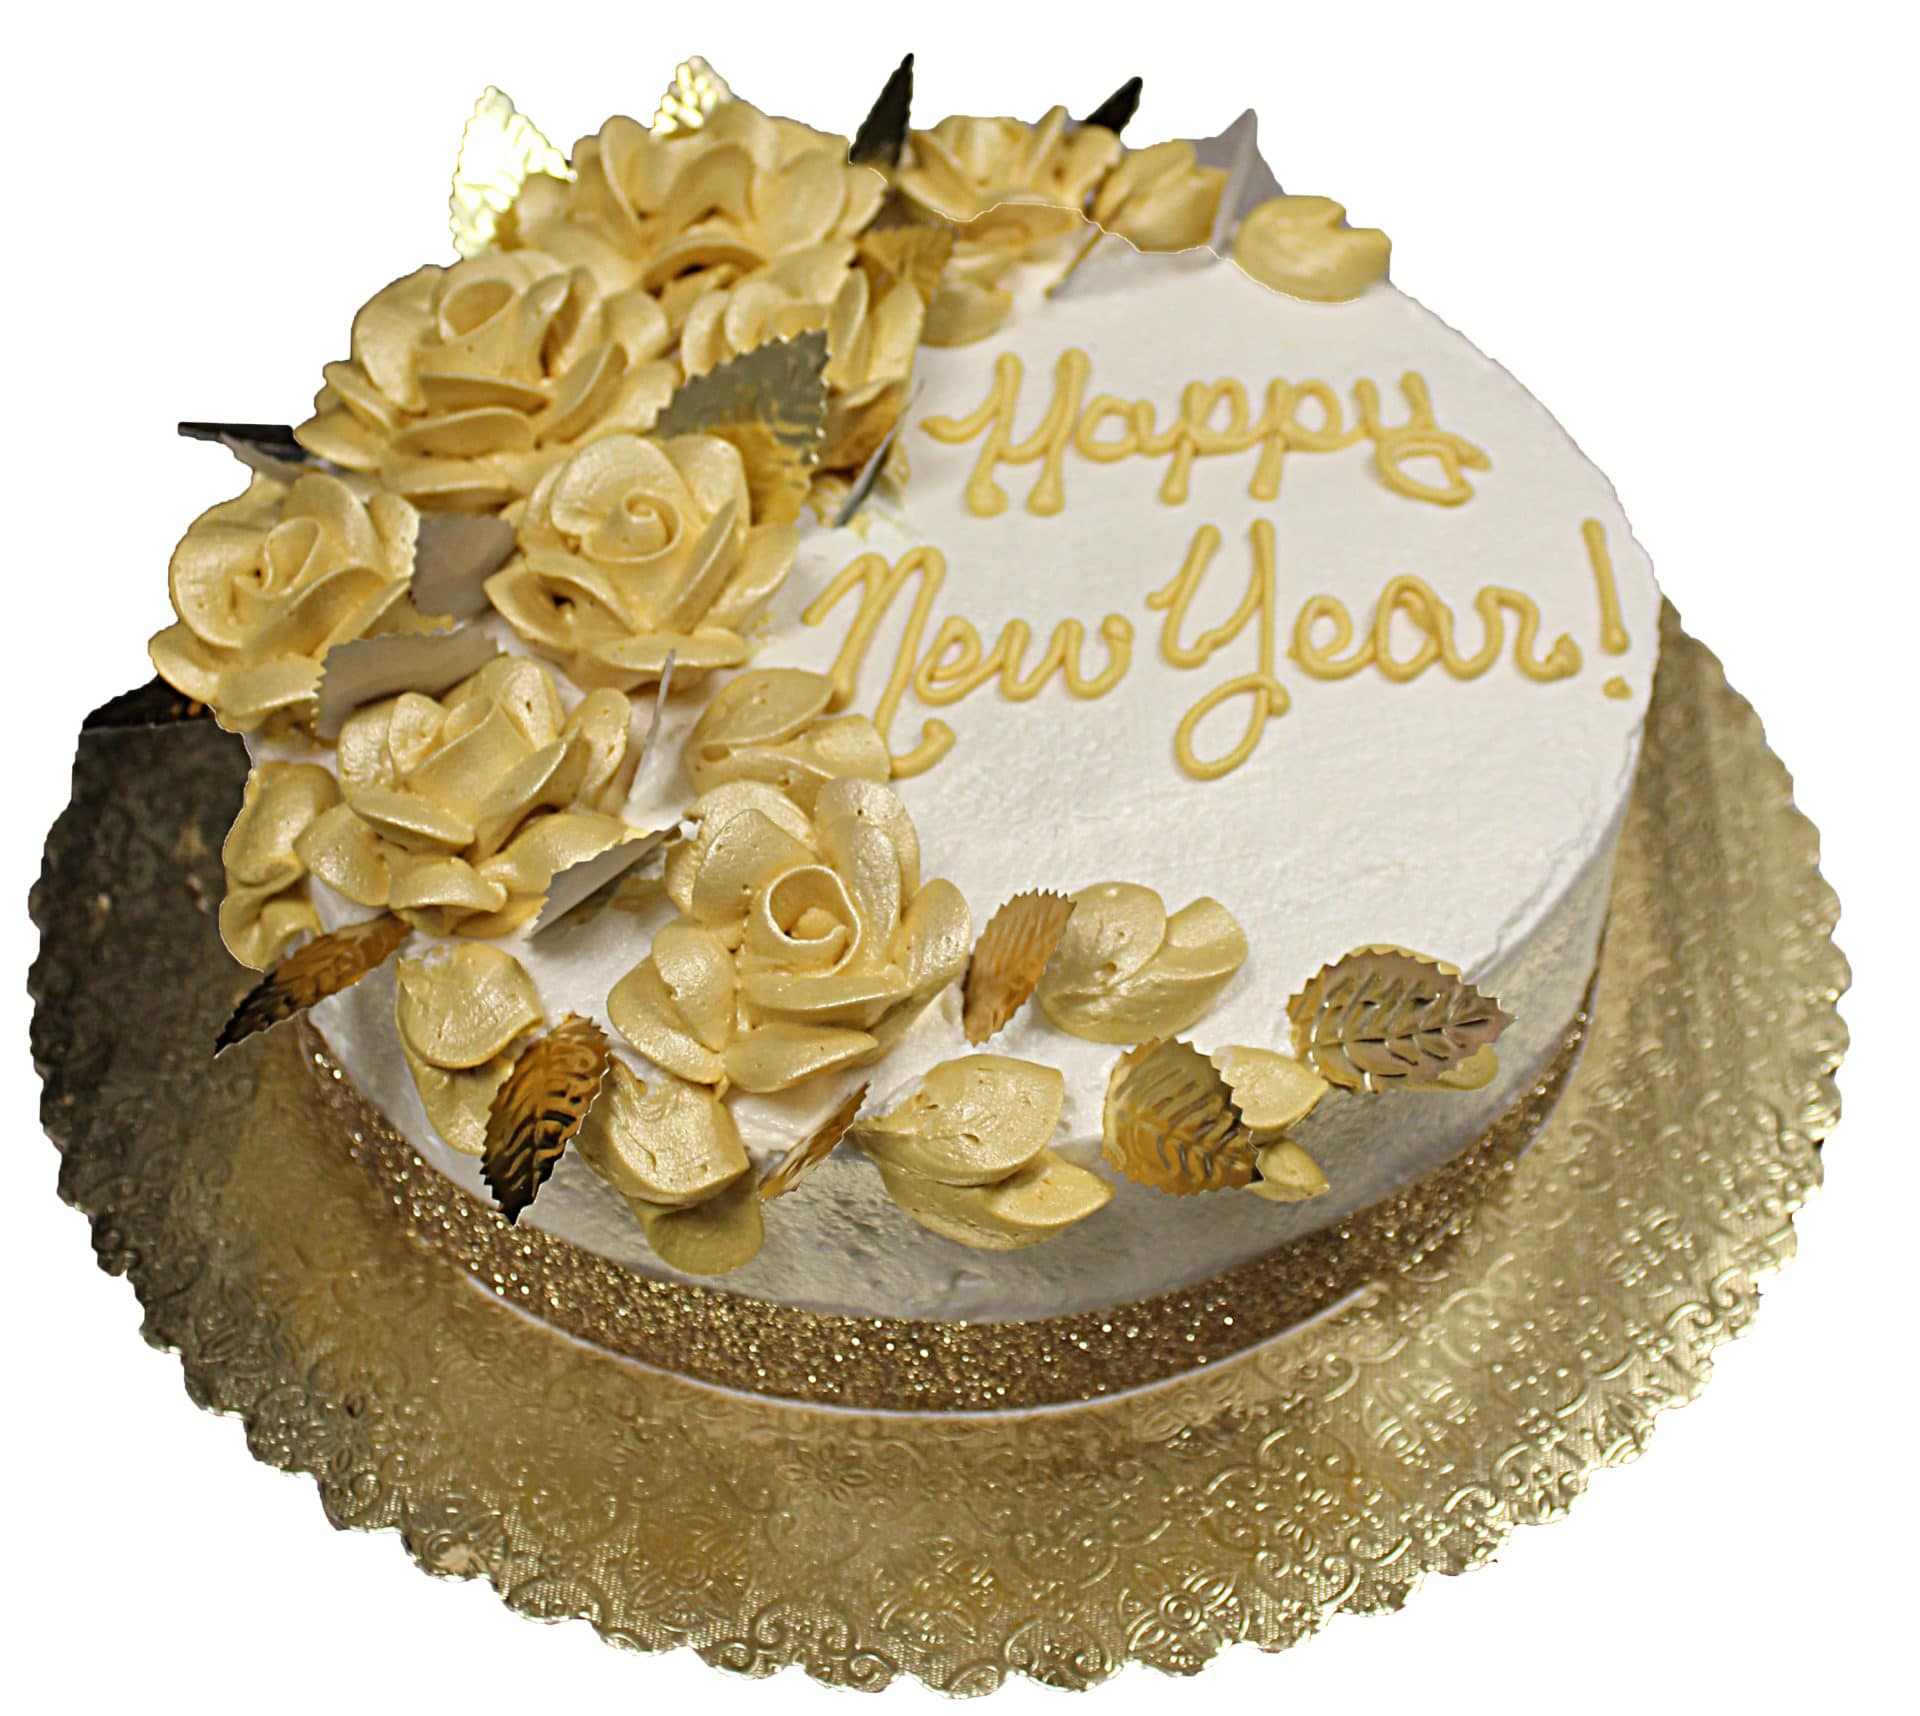 New Year Cake 3   Aggie s Bakery   Cake Shop Home   Cakes   Holiday Cakes   Baked Goods   New Year s Eve   New Year Cake  3